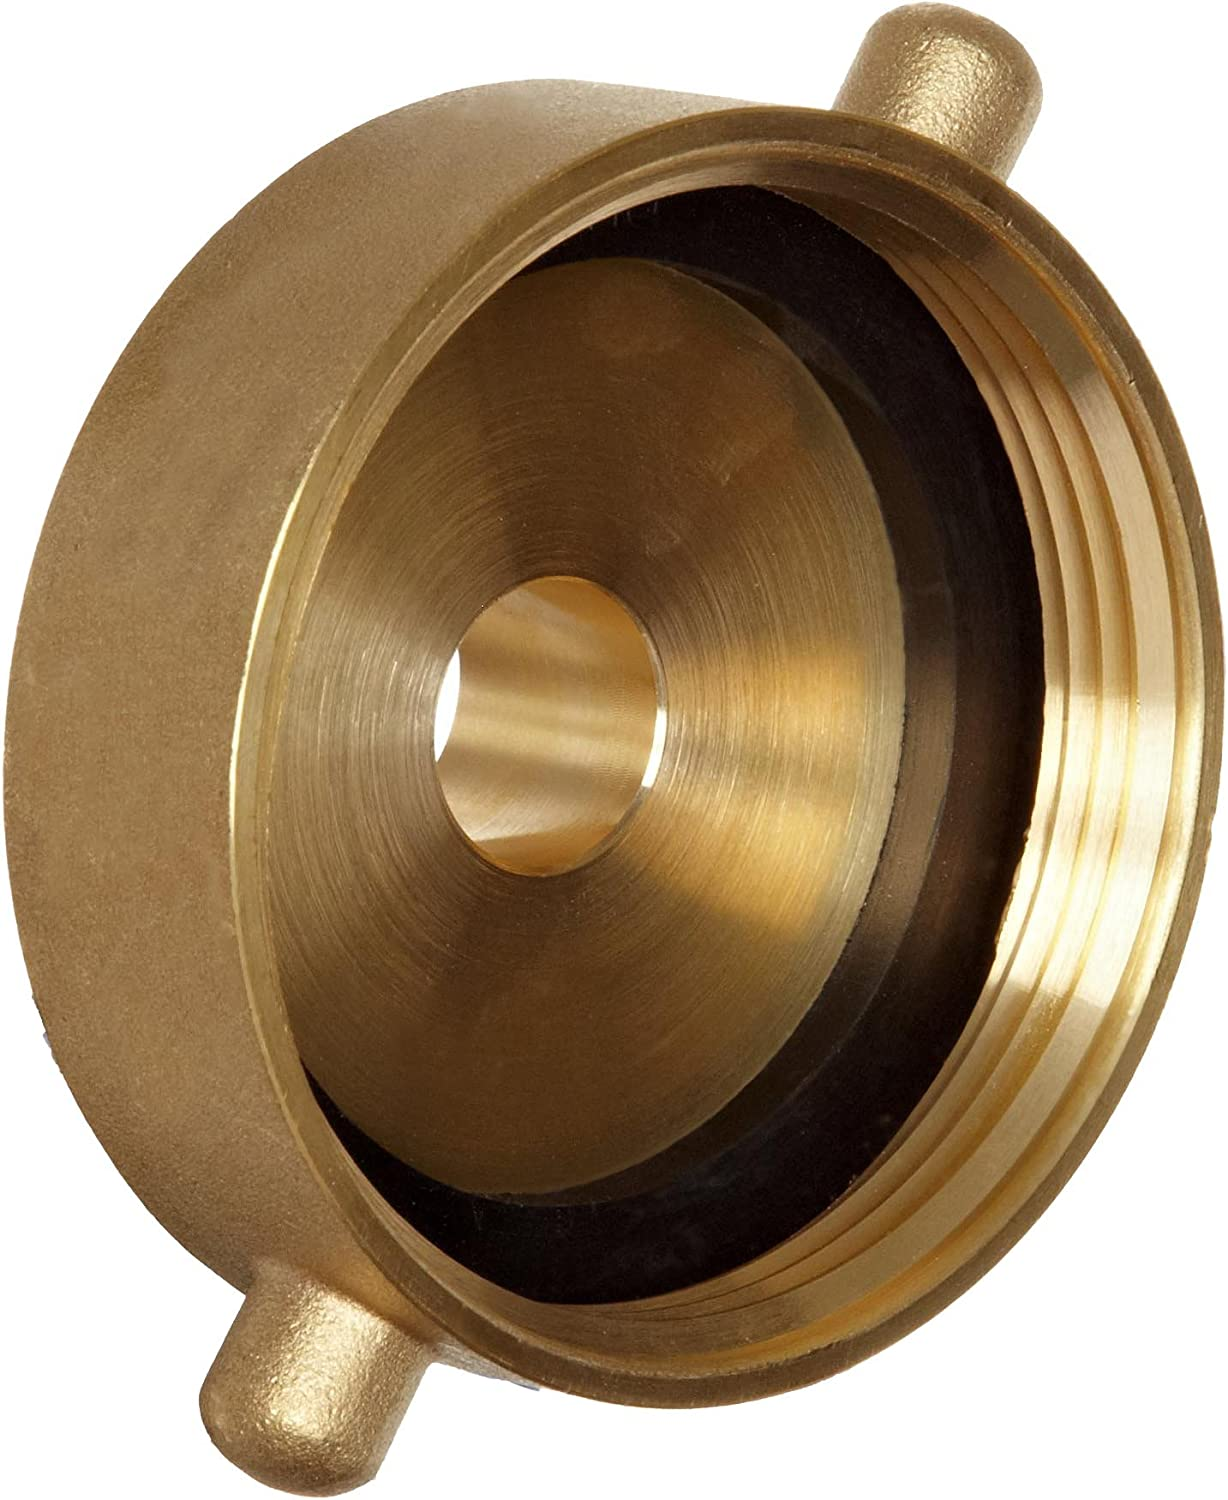 "Dixon Valve HA2576 Brass Fire Equipment, Hydrant Adapter with Pin Lug, 2-1/2"" NST (NH) Female x 3/4"" GHT Male"